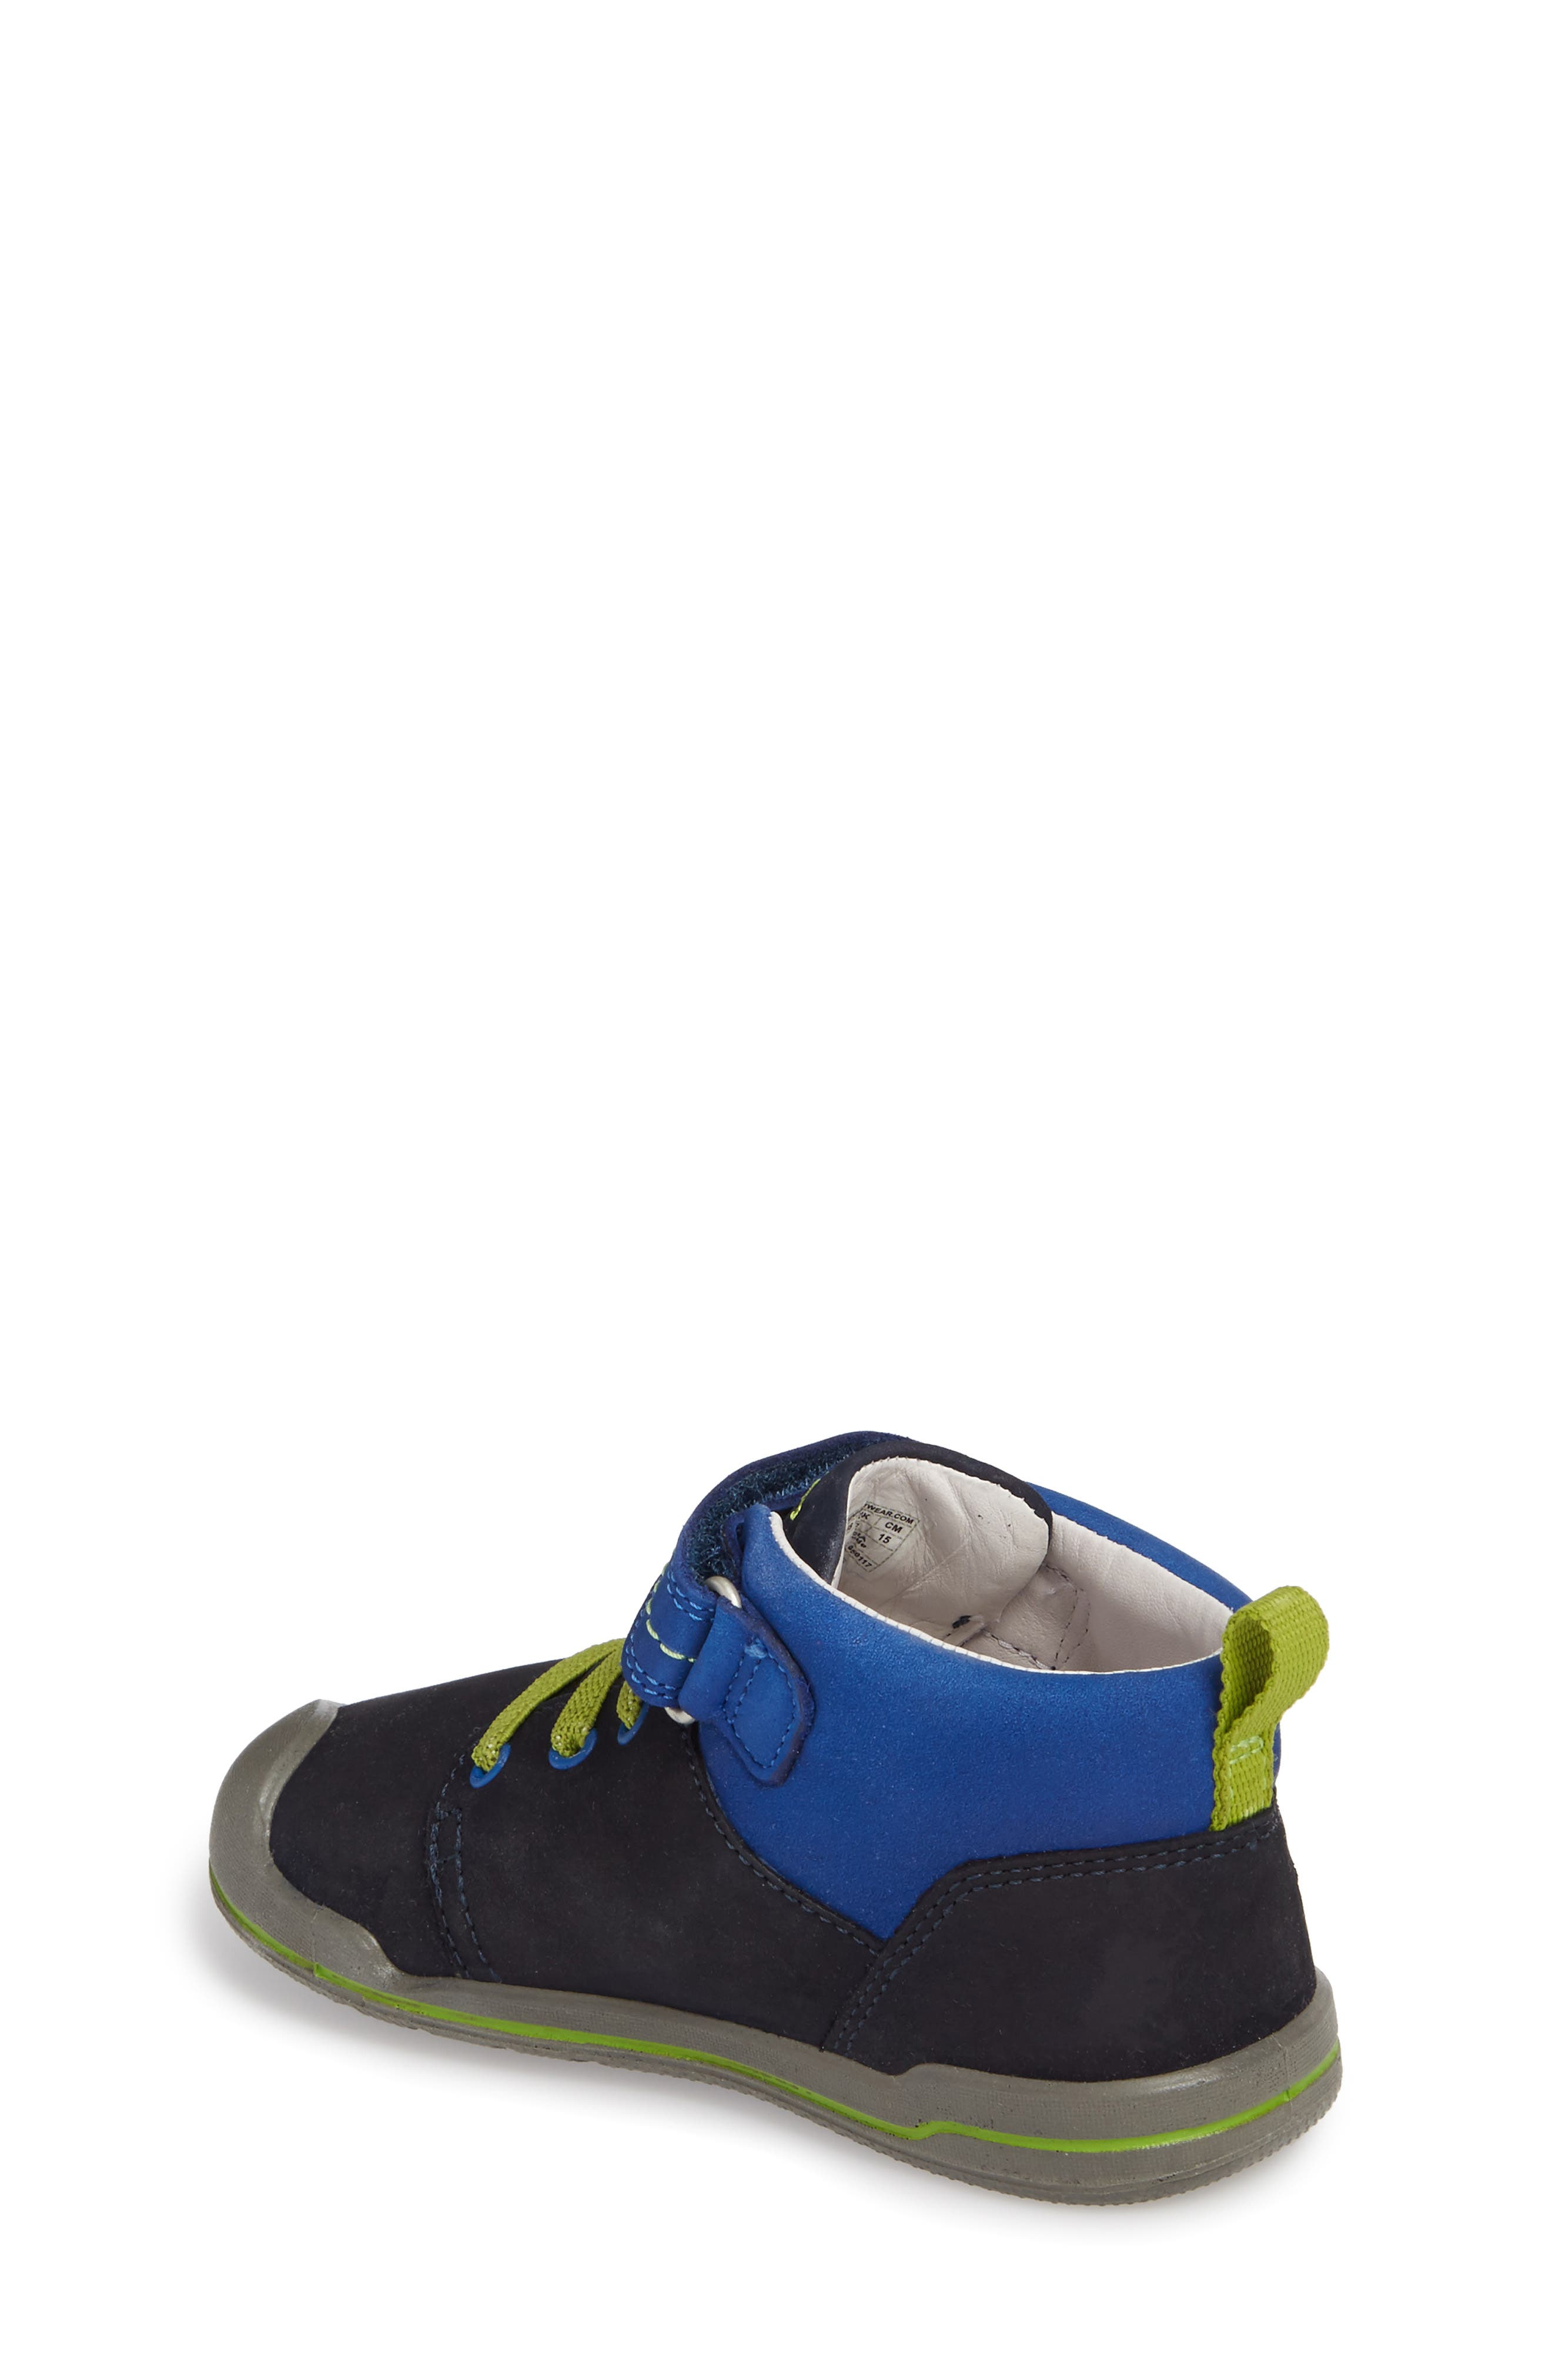 Sprout Mid Sneaker,                             Alternate thumbnail 2, color,                             400